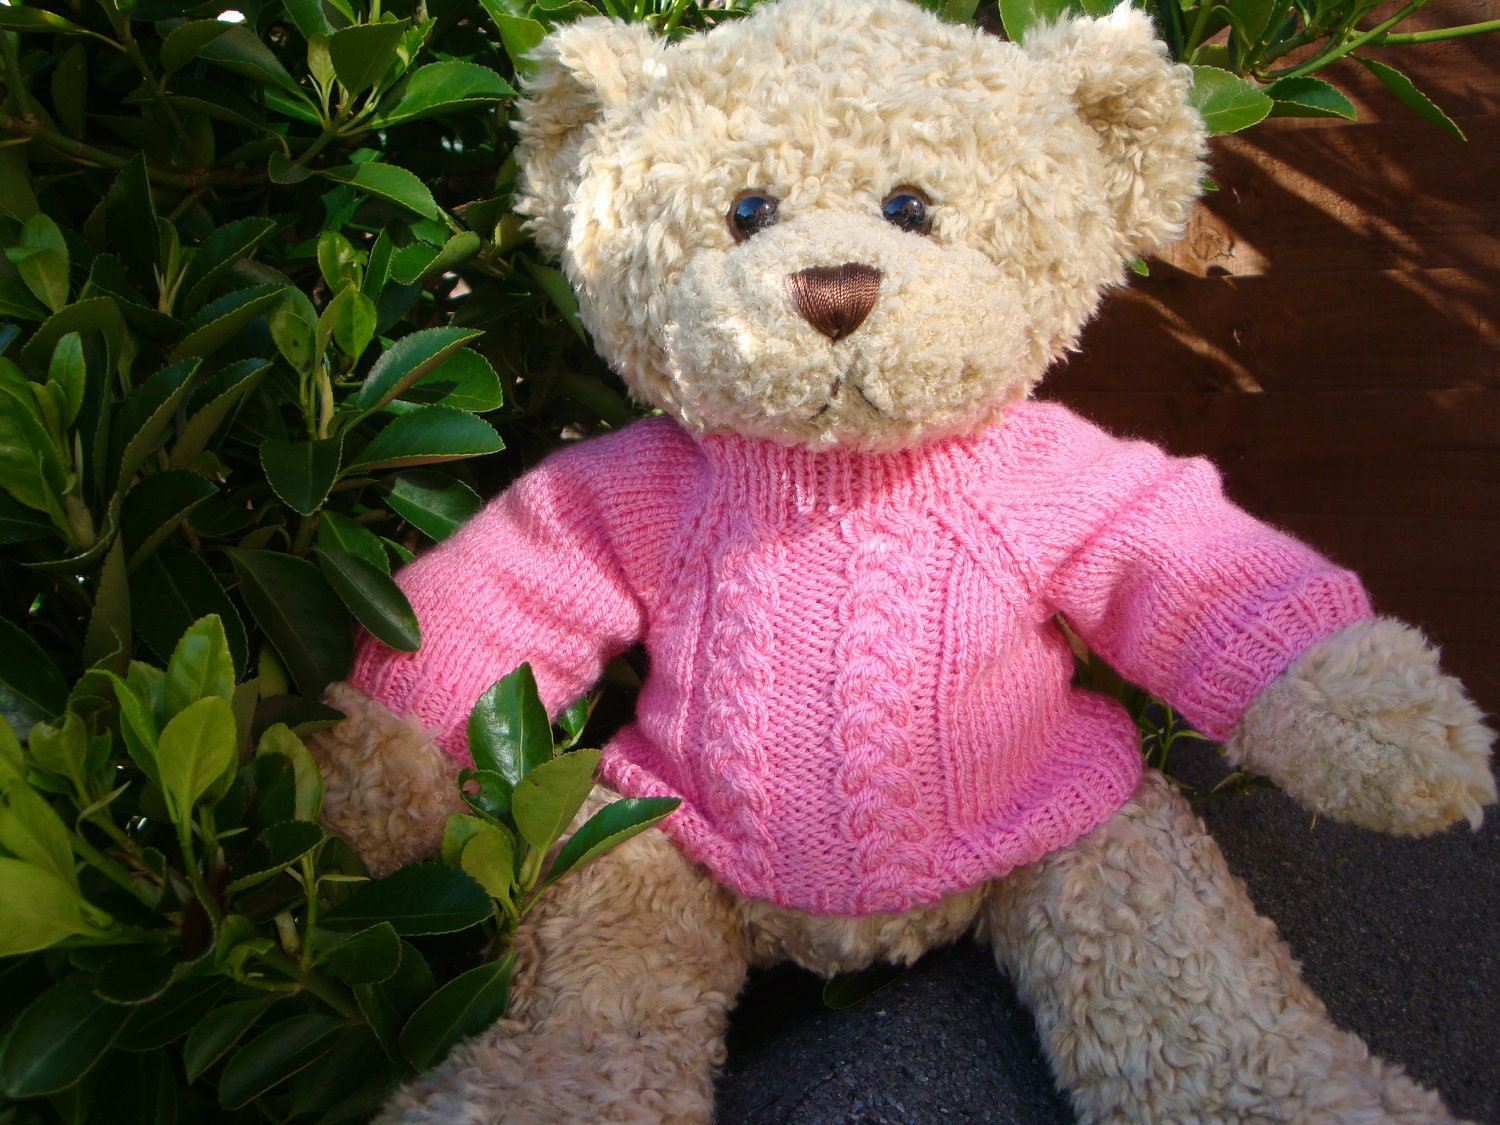 Jumper Knitting Pattern For A Teddy Bear : Knitting Pattern Teddy Bear Sweater for Build a Bear